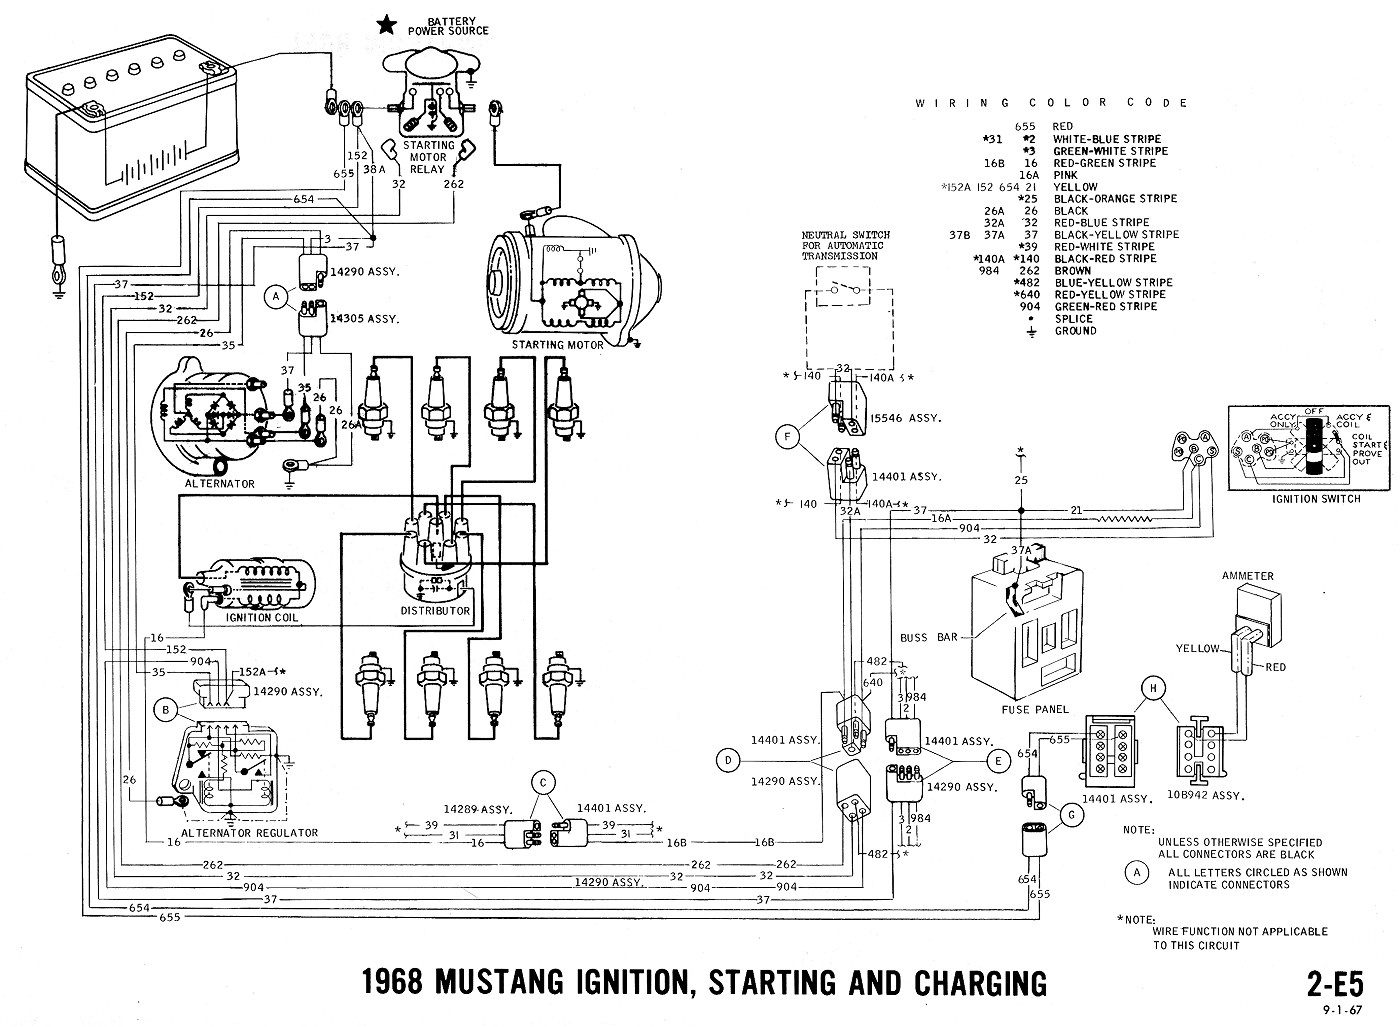 [DIAGRAM_5UK]  197C7 66 Mustang Wiring Diagram Free | Wiring Library | 1966 Mustang Color Wiring Diagram |  | Wiring Library